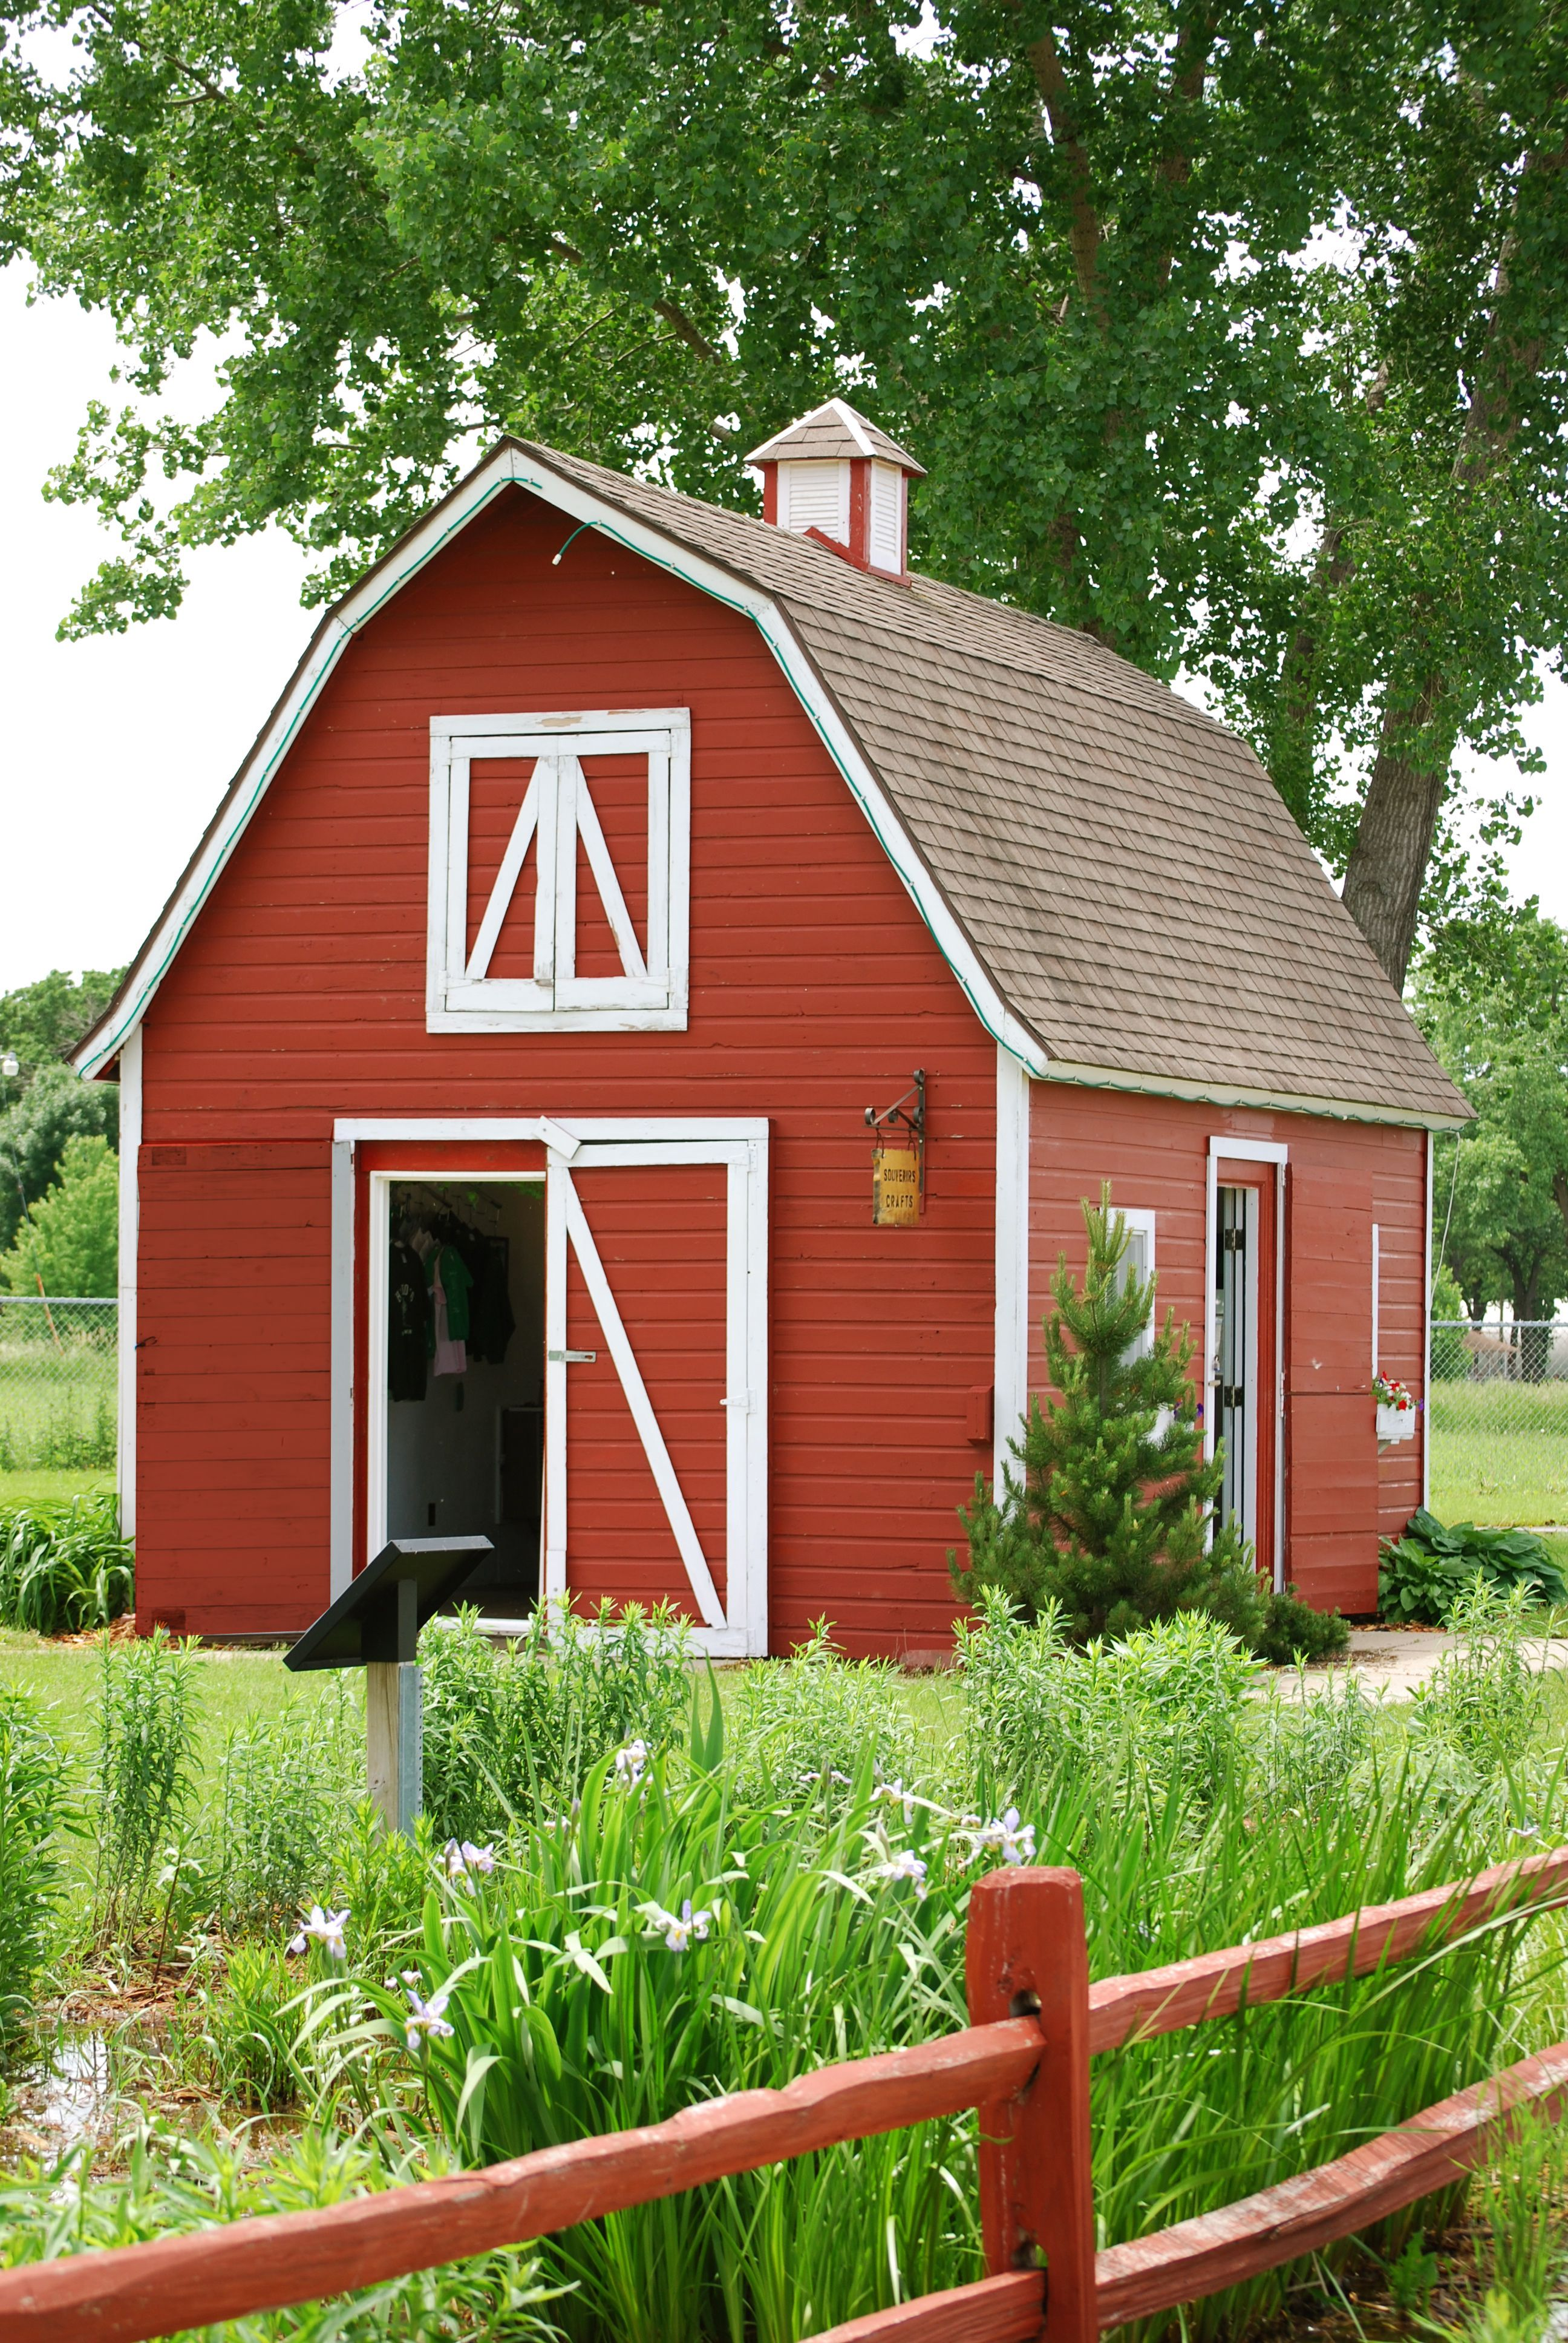 Small Barns | Giant Attractions In Blue Earth, MN | Blue Earth Area Chamber  Of